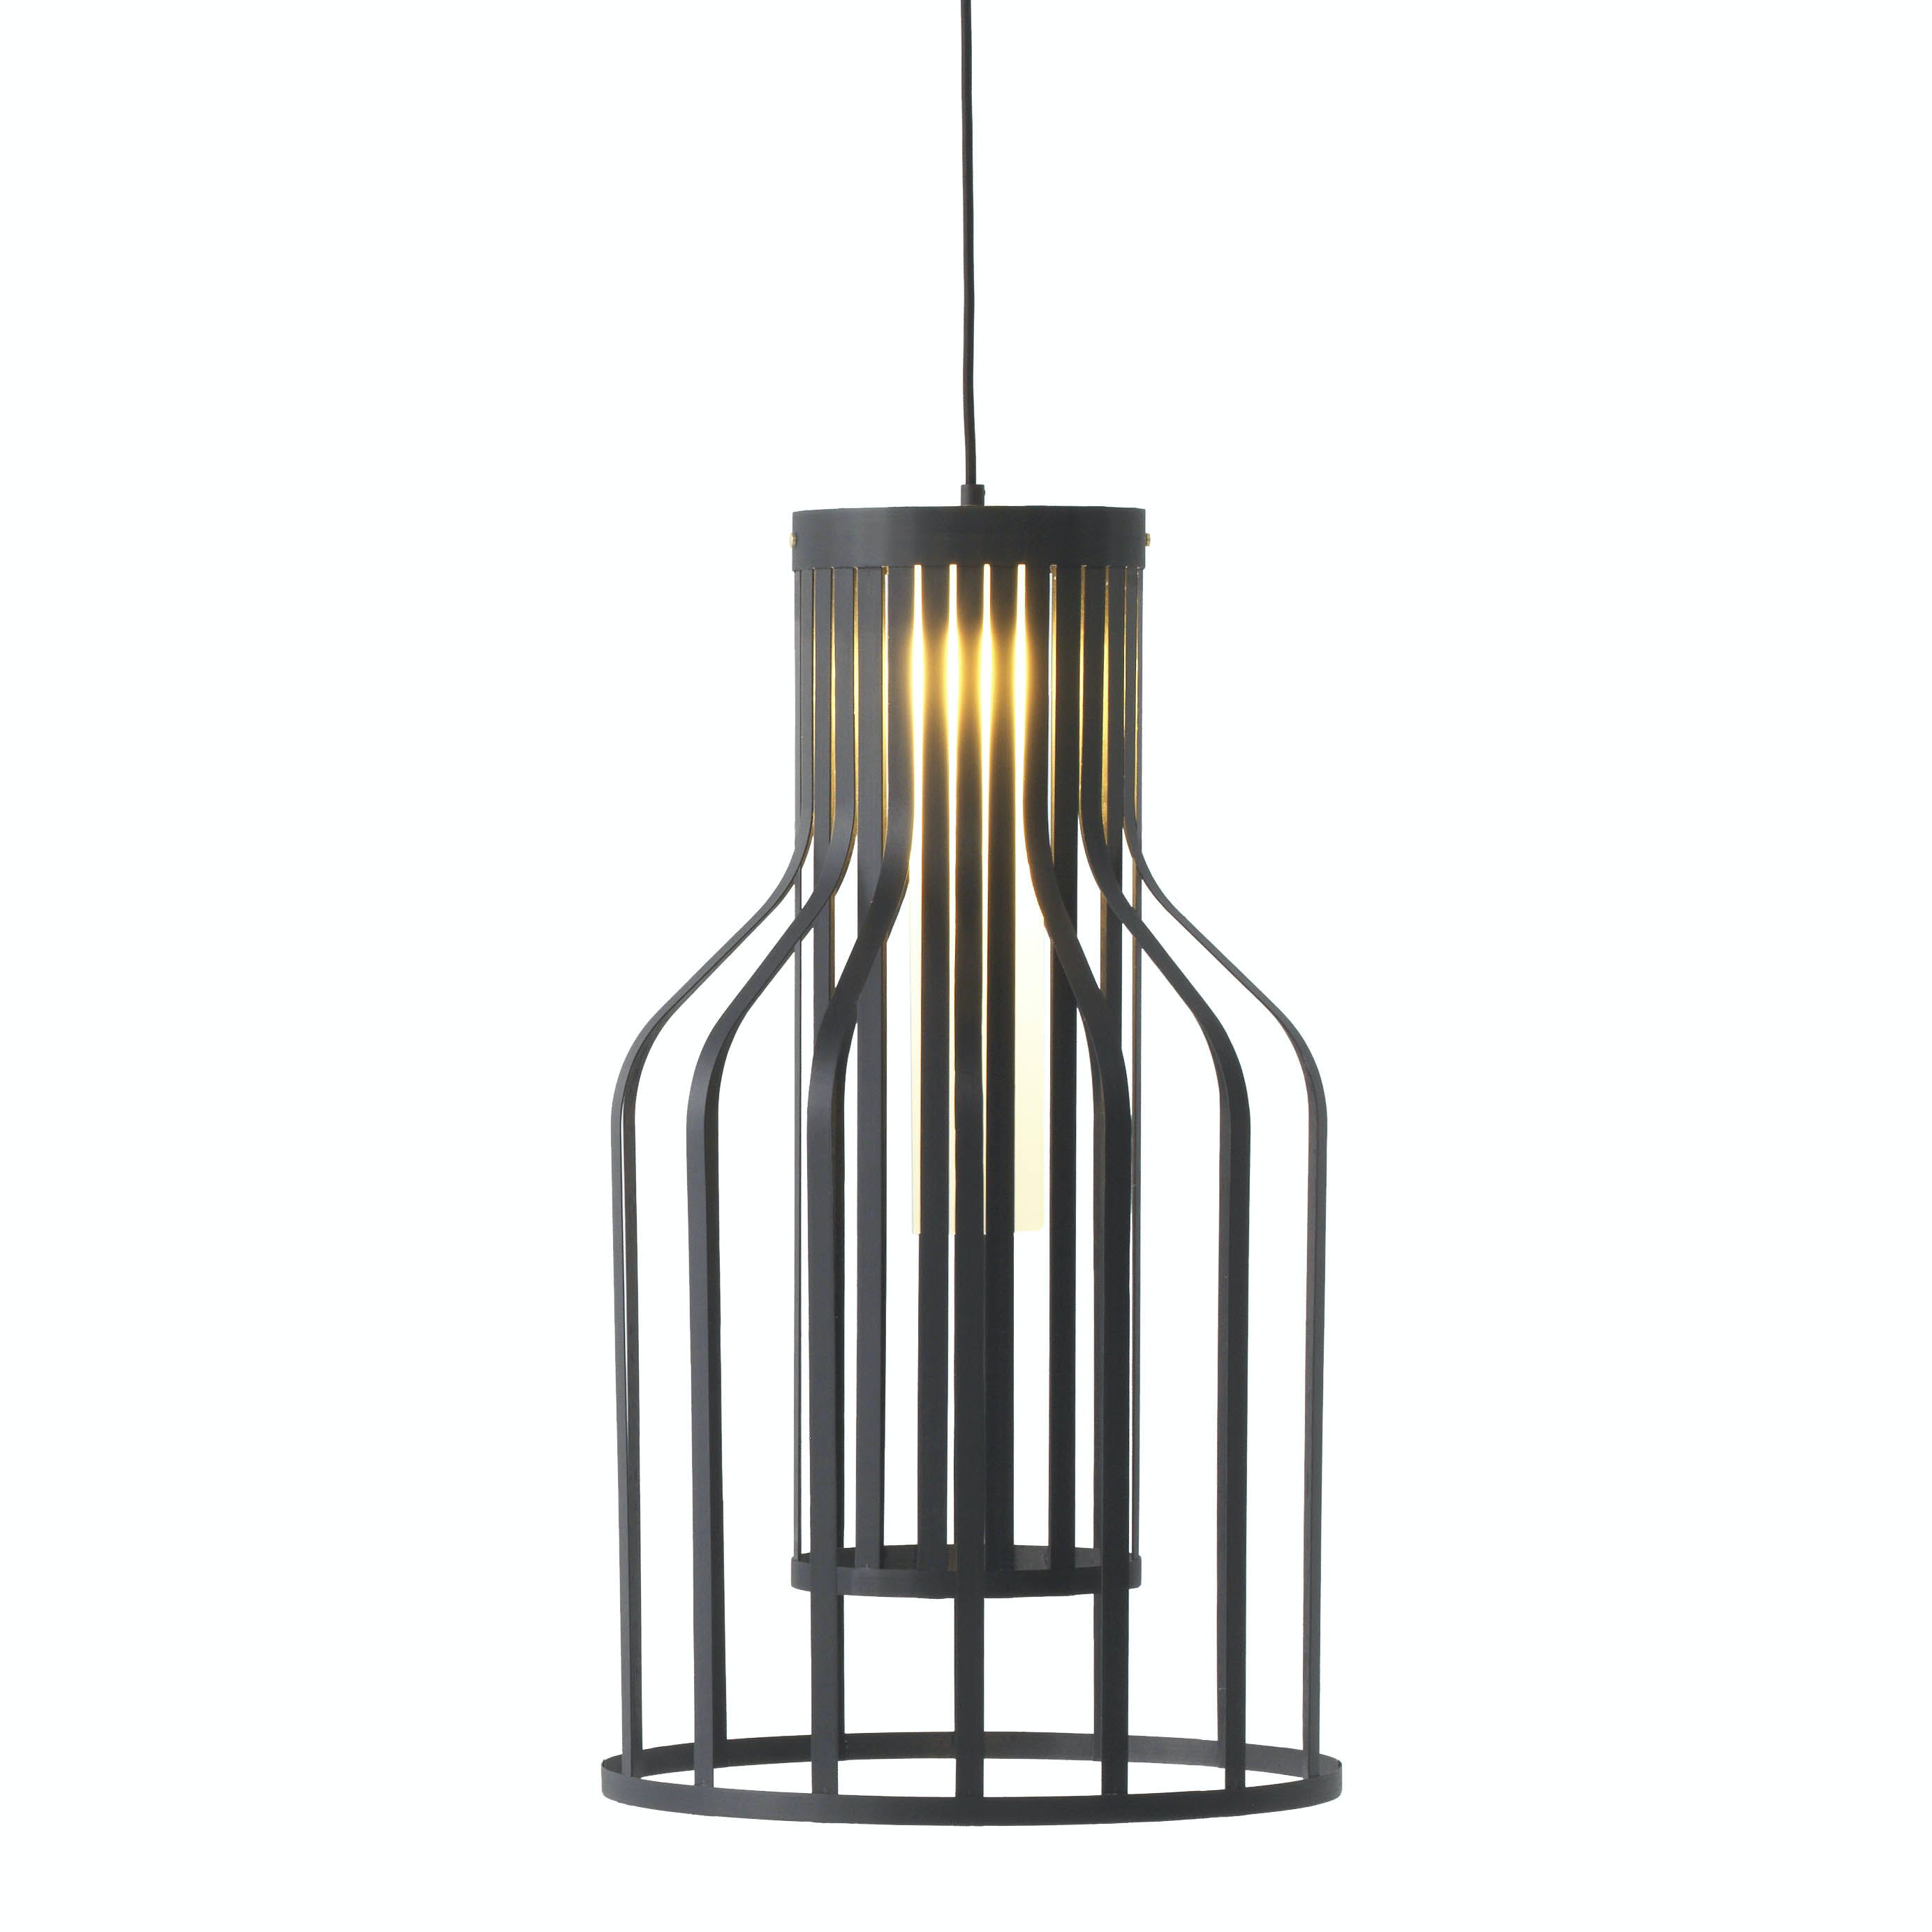 Resident-furniture-fibre-light-bottle-black-haute-living